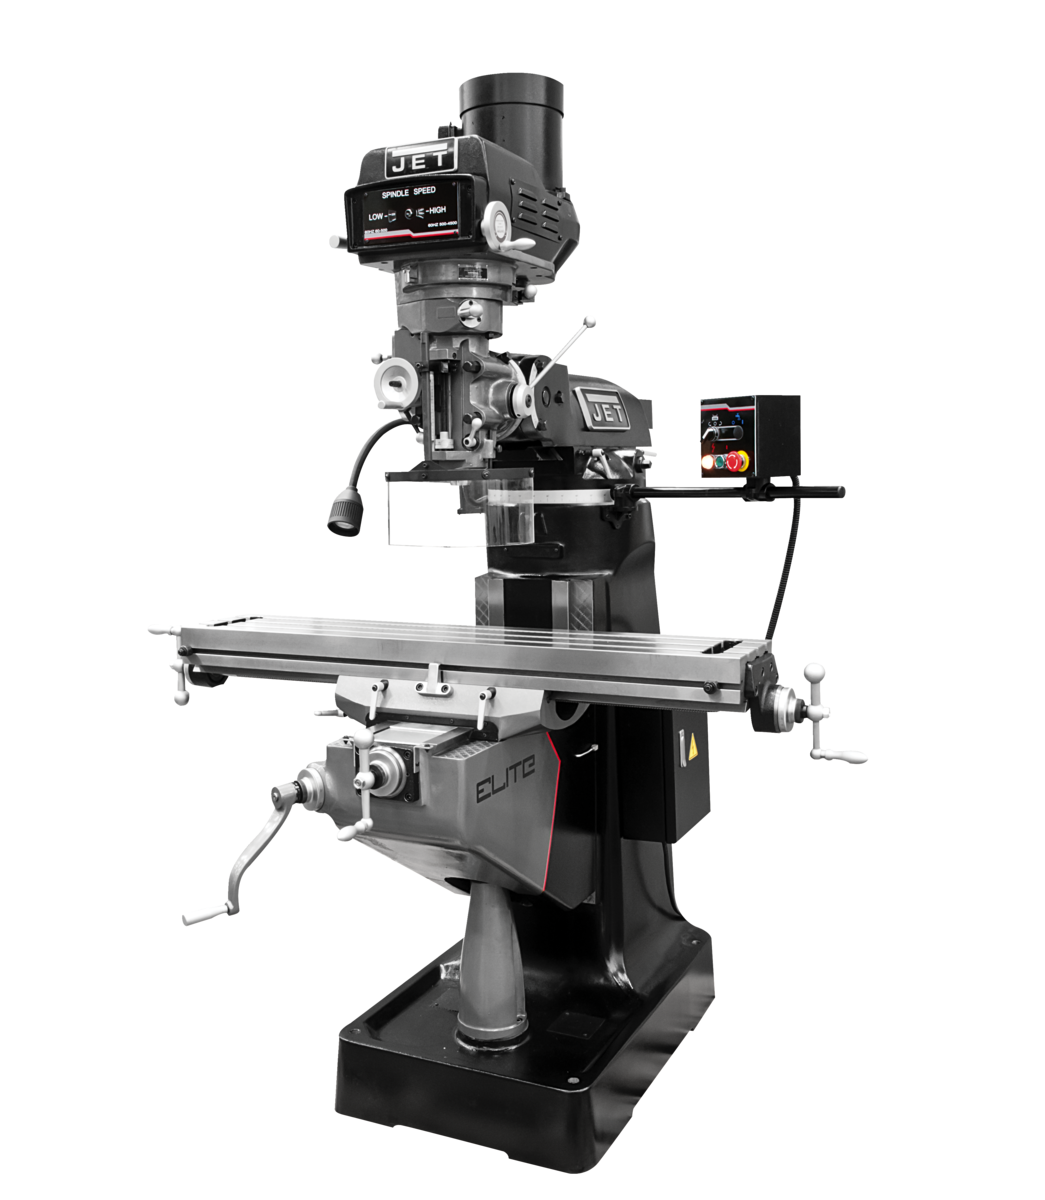 ETM-949 Mill with 3-Axis ACU-RITE 203 (Quill) DRO and Servo X, Y, Z-Axis Powerfeeds